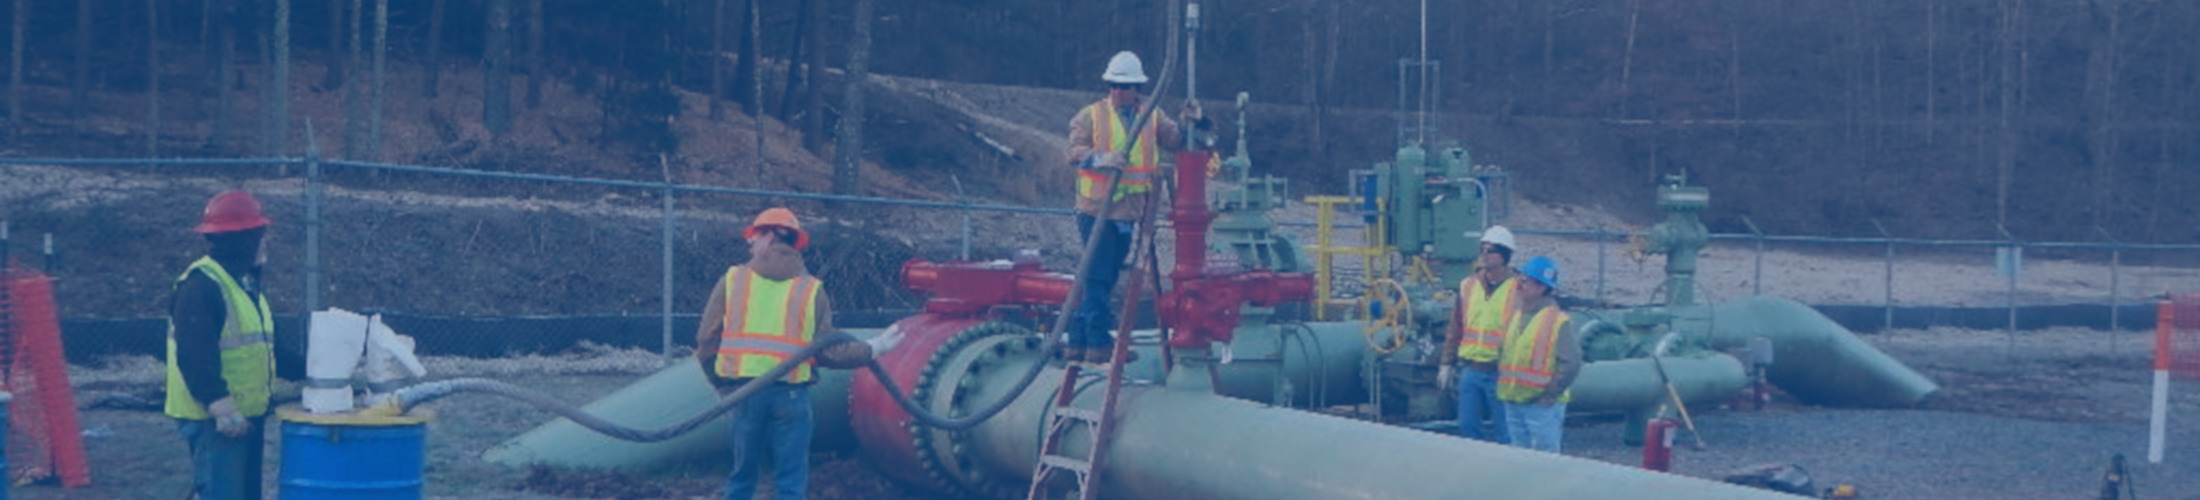 Pipeline Services: third party oversight, safety, inspection, corrosion, benzene / TENORM